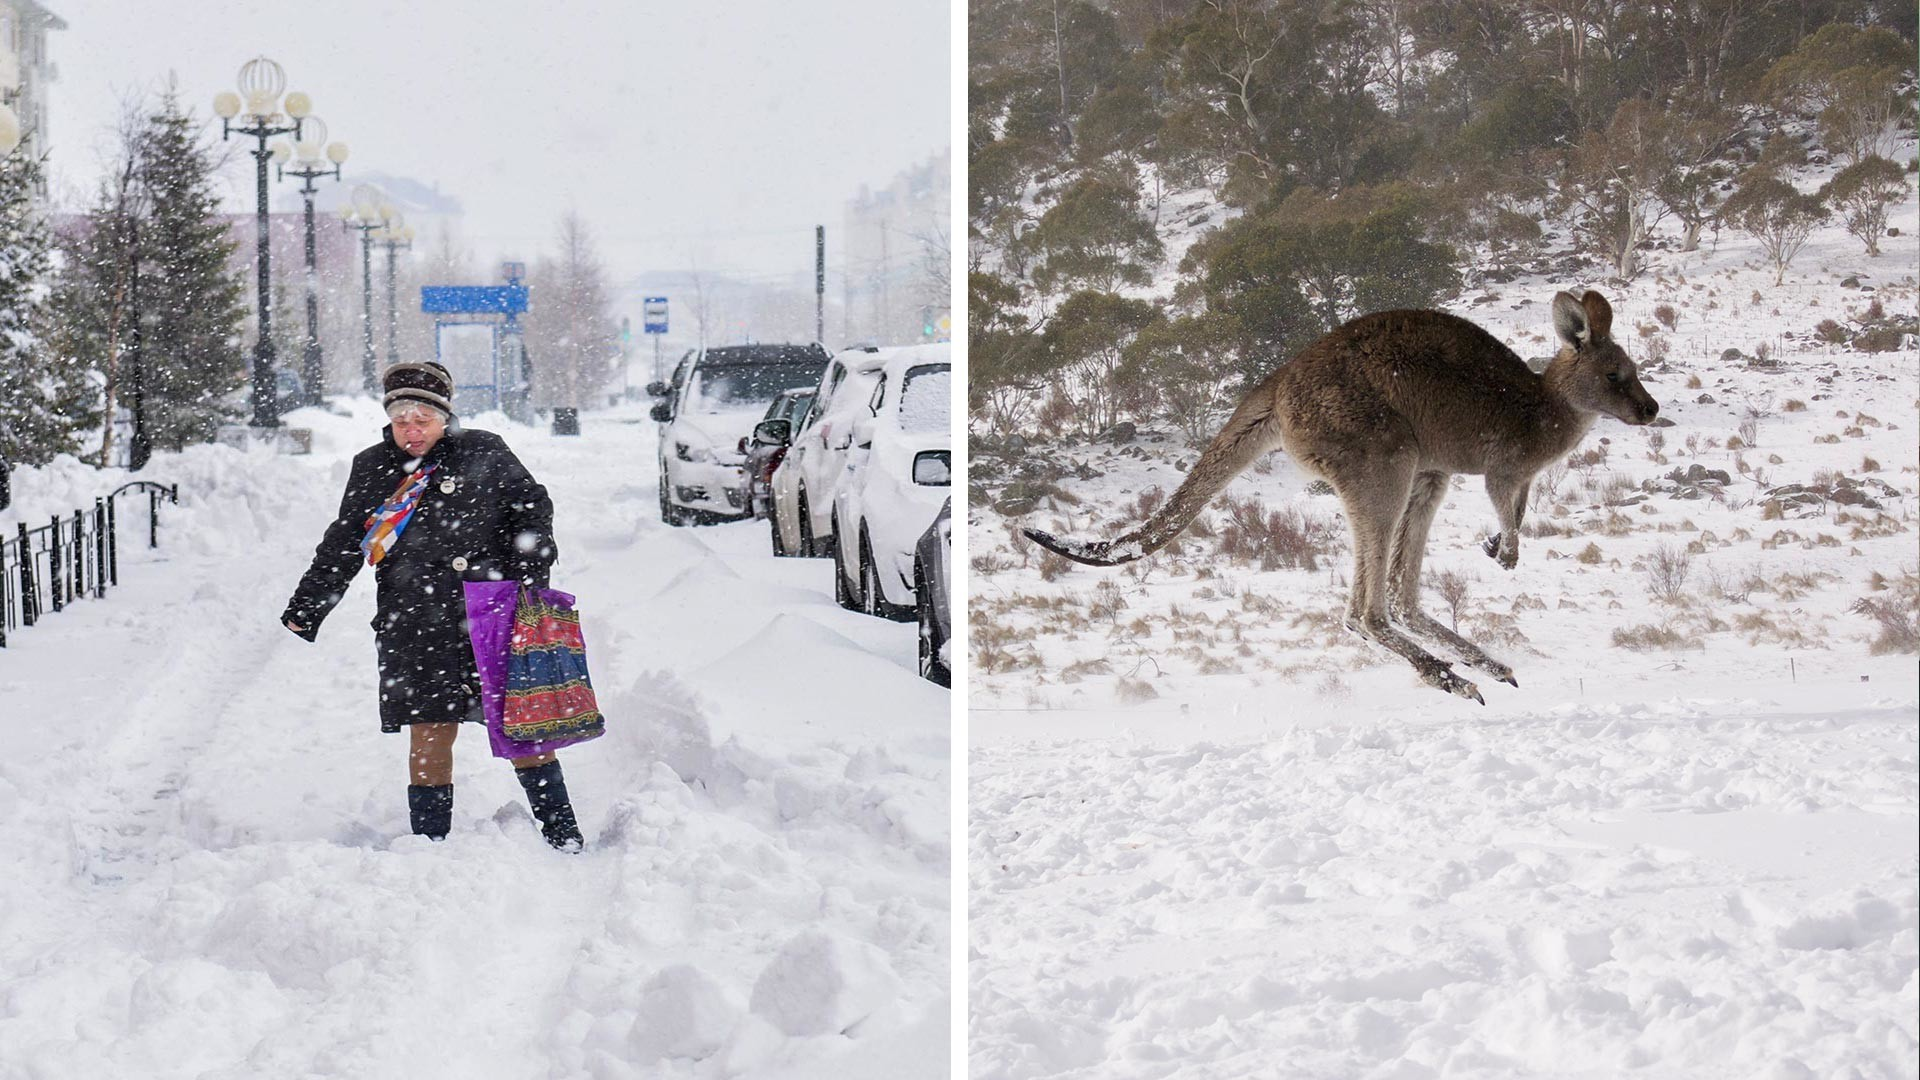 Left: Heavy snowfall in Salekhard in the late spring. Right: A kangaroo enjoys the snow in Australia.